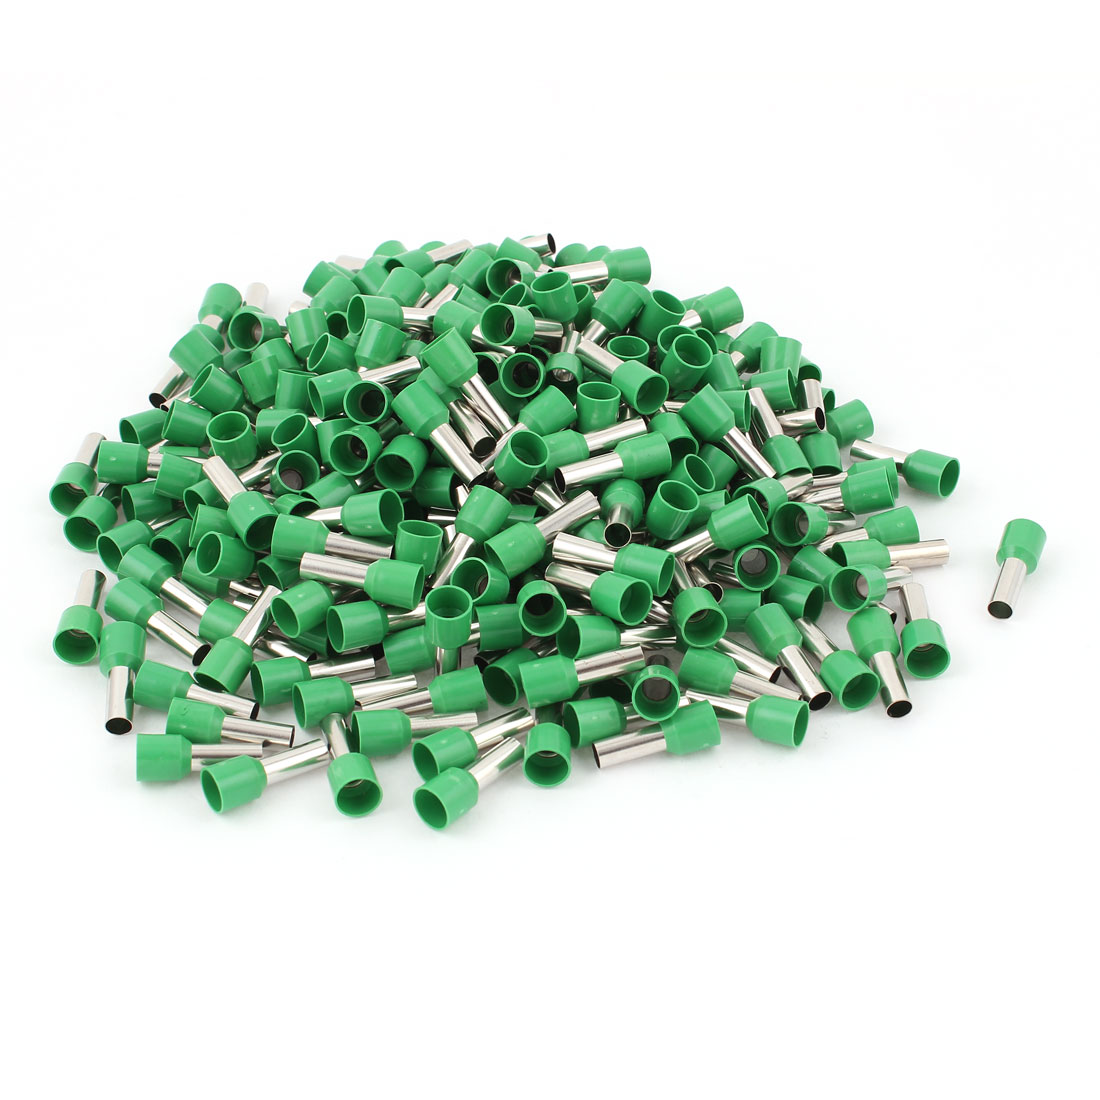 270pcs Green Wire Crimp Connector Insulated Ferrule Cord End Terminal AWG 8